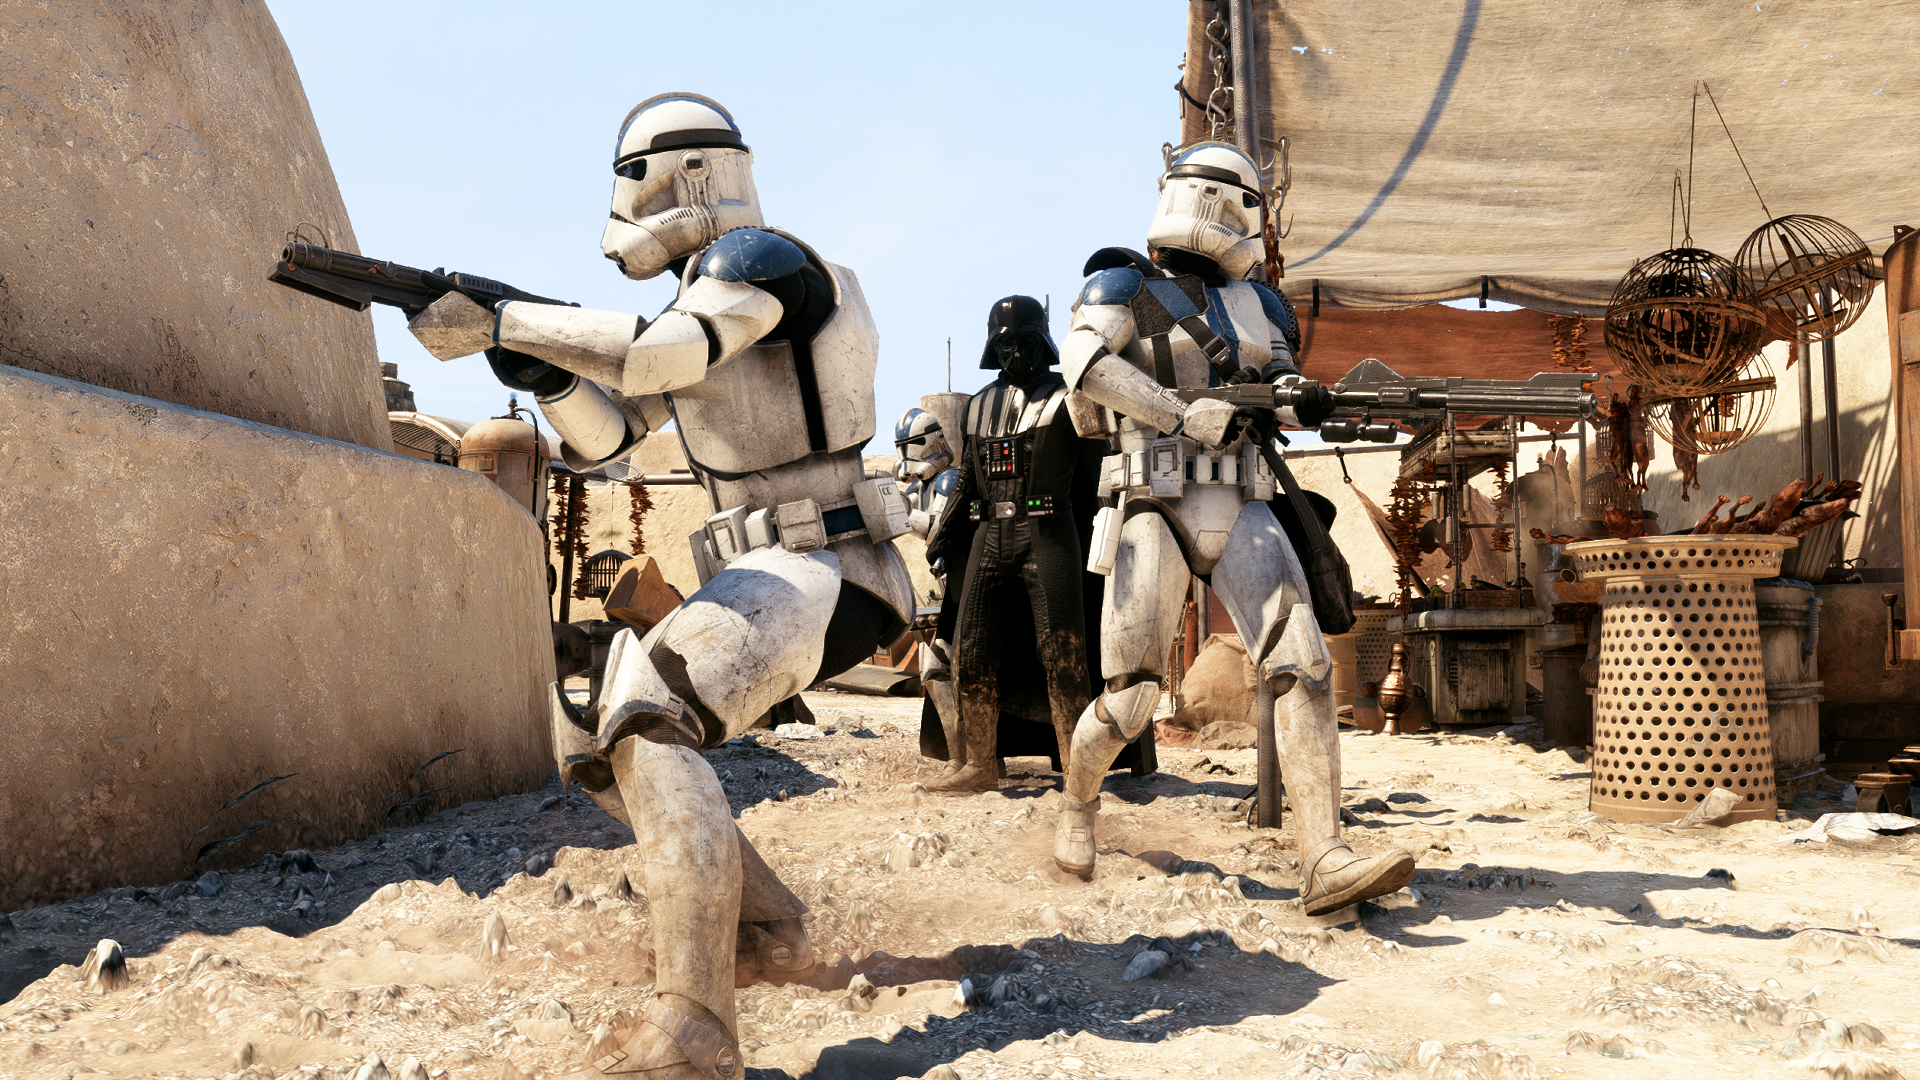 501st Legion Wallpaper 104 images in Collection Page 2 1920x1080